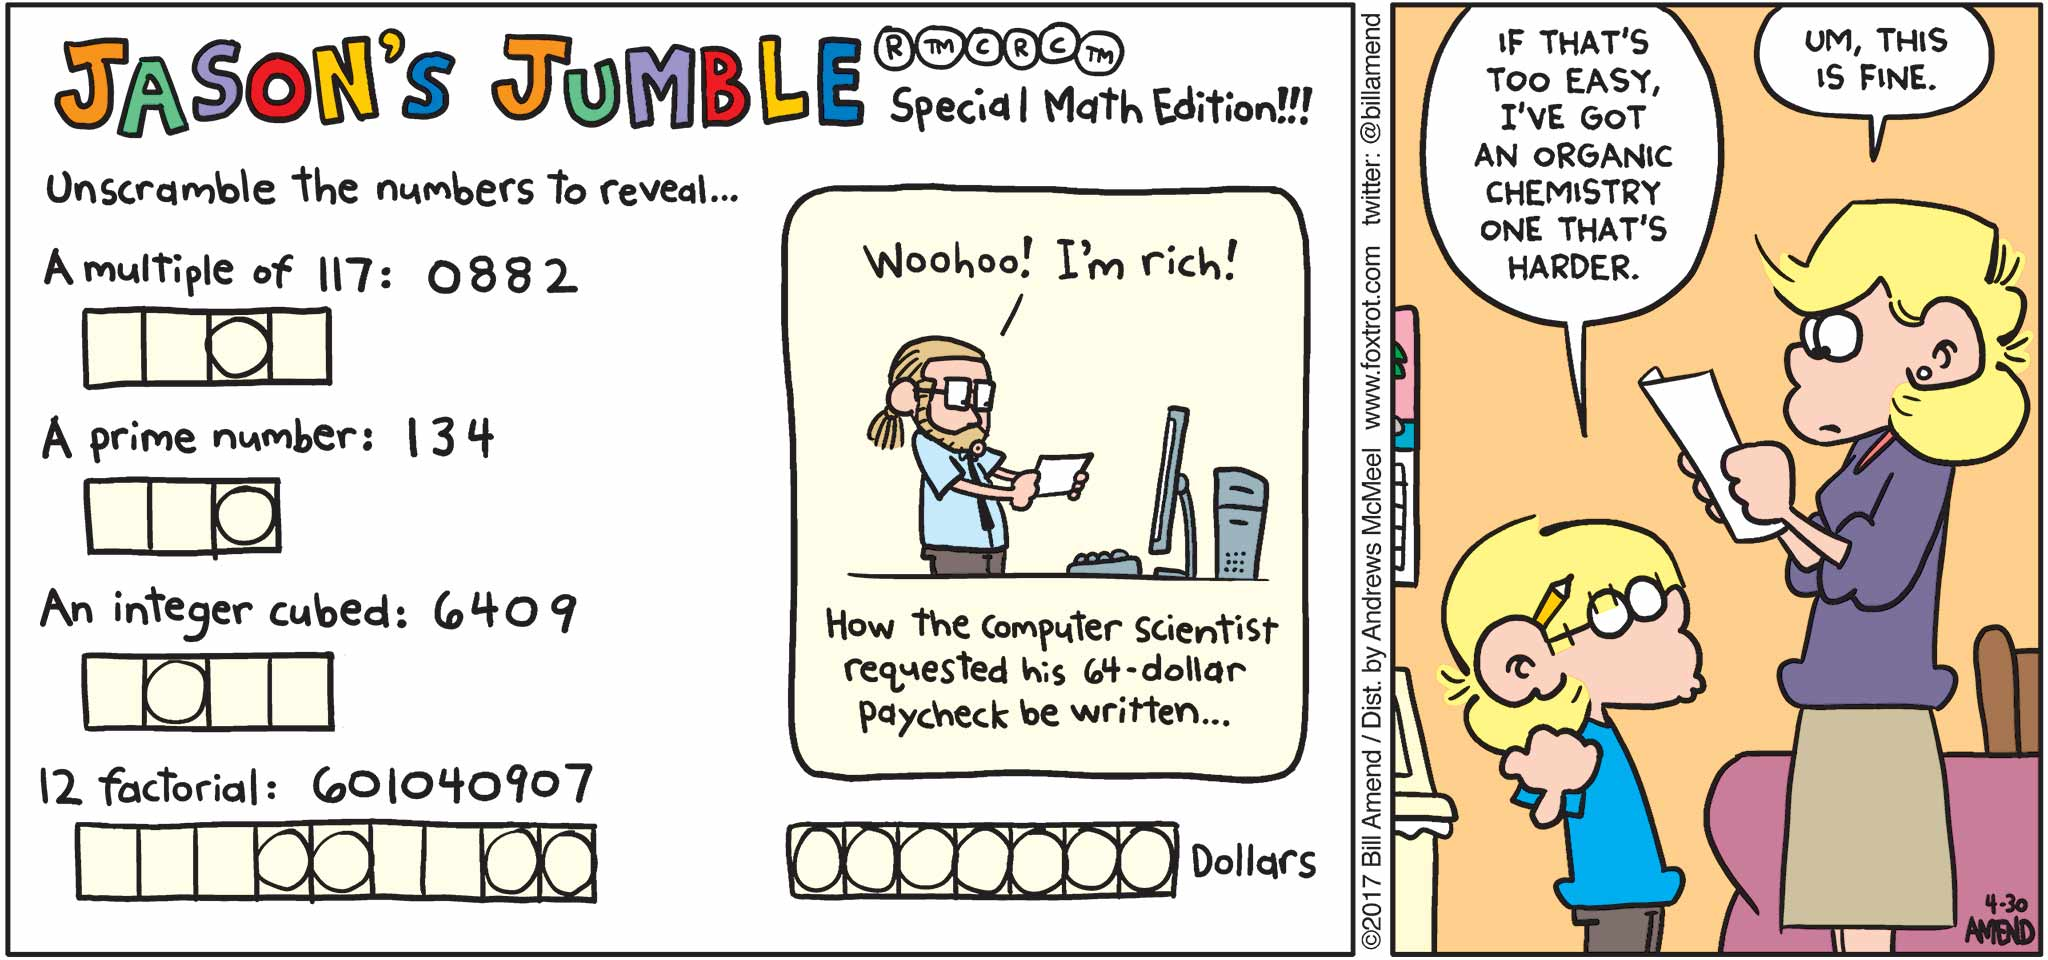 "FoxTrot by Bill Amend - ""Numble"" published April 30, 2017 - Jason says: If that's too easy, I've got an organic chemistry on that's harder. Andy says: Um, this is fine."